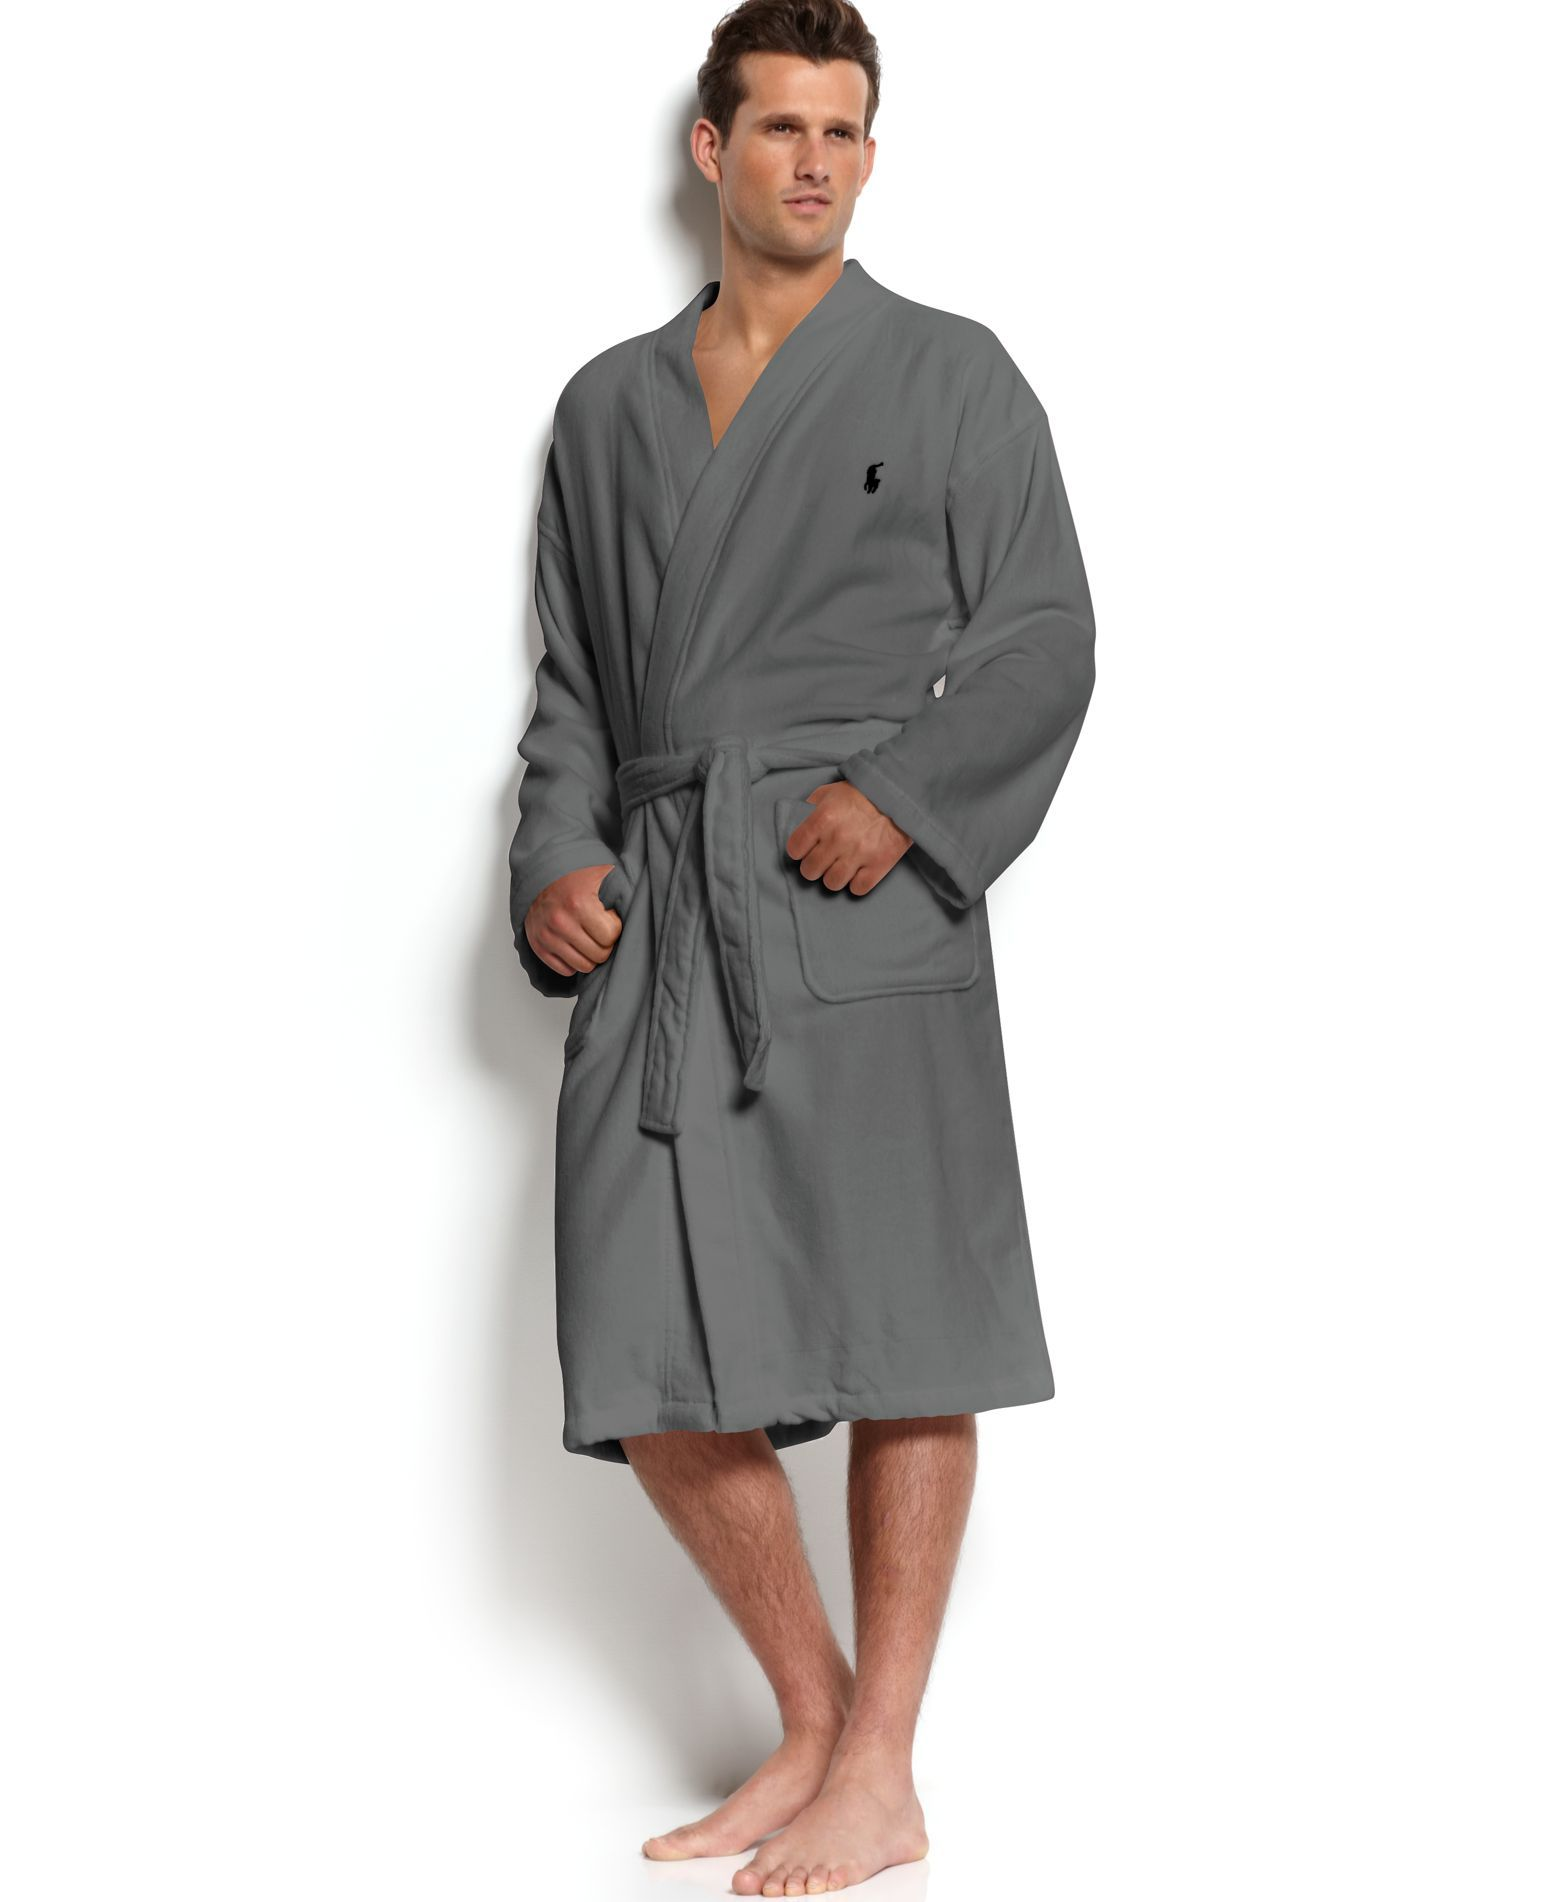 Men s Sleepwear Soft Cotton Kimono Velour Robe  ed94ba2a3